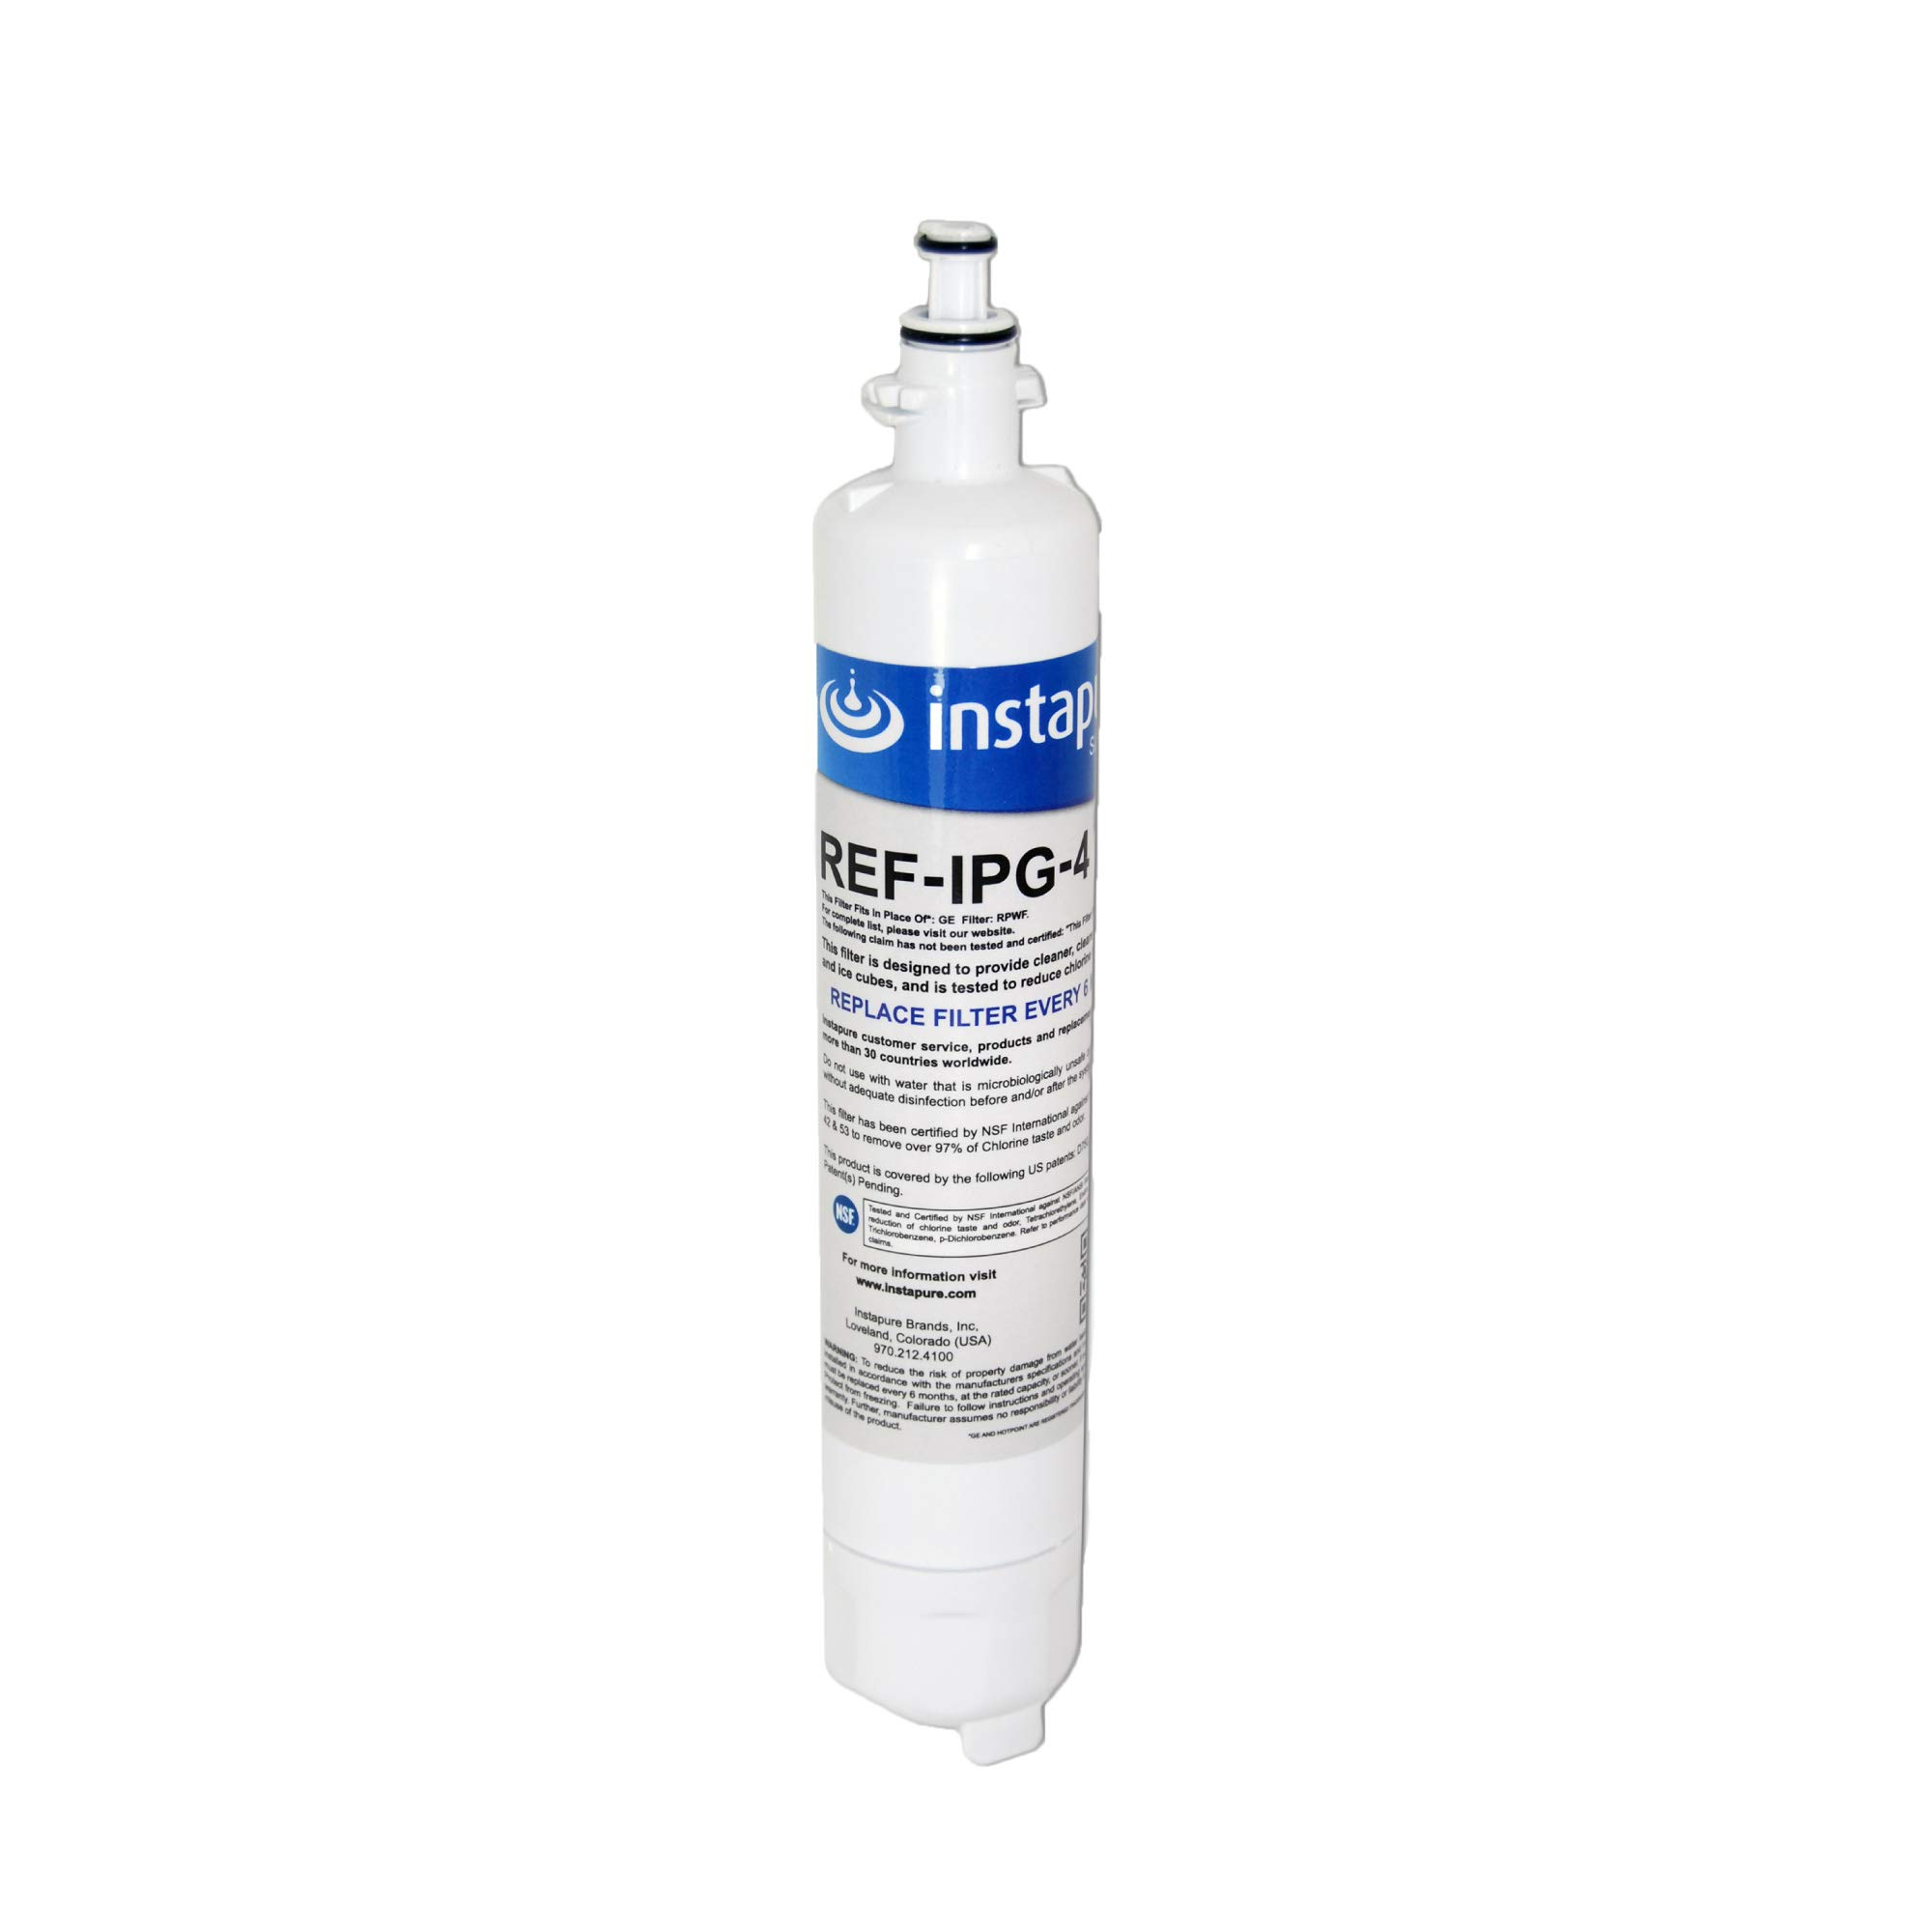 Instapure REF-IPG-4 ULTRA Refrigerator Filter, MADE IN USA, Compatible with GE RPWF, Tested & Certified by NSF to ANSI/NSF 42 & 53